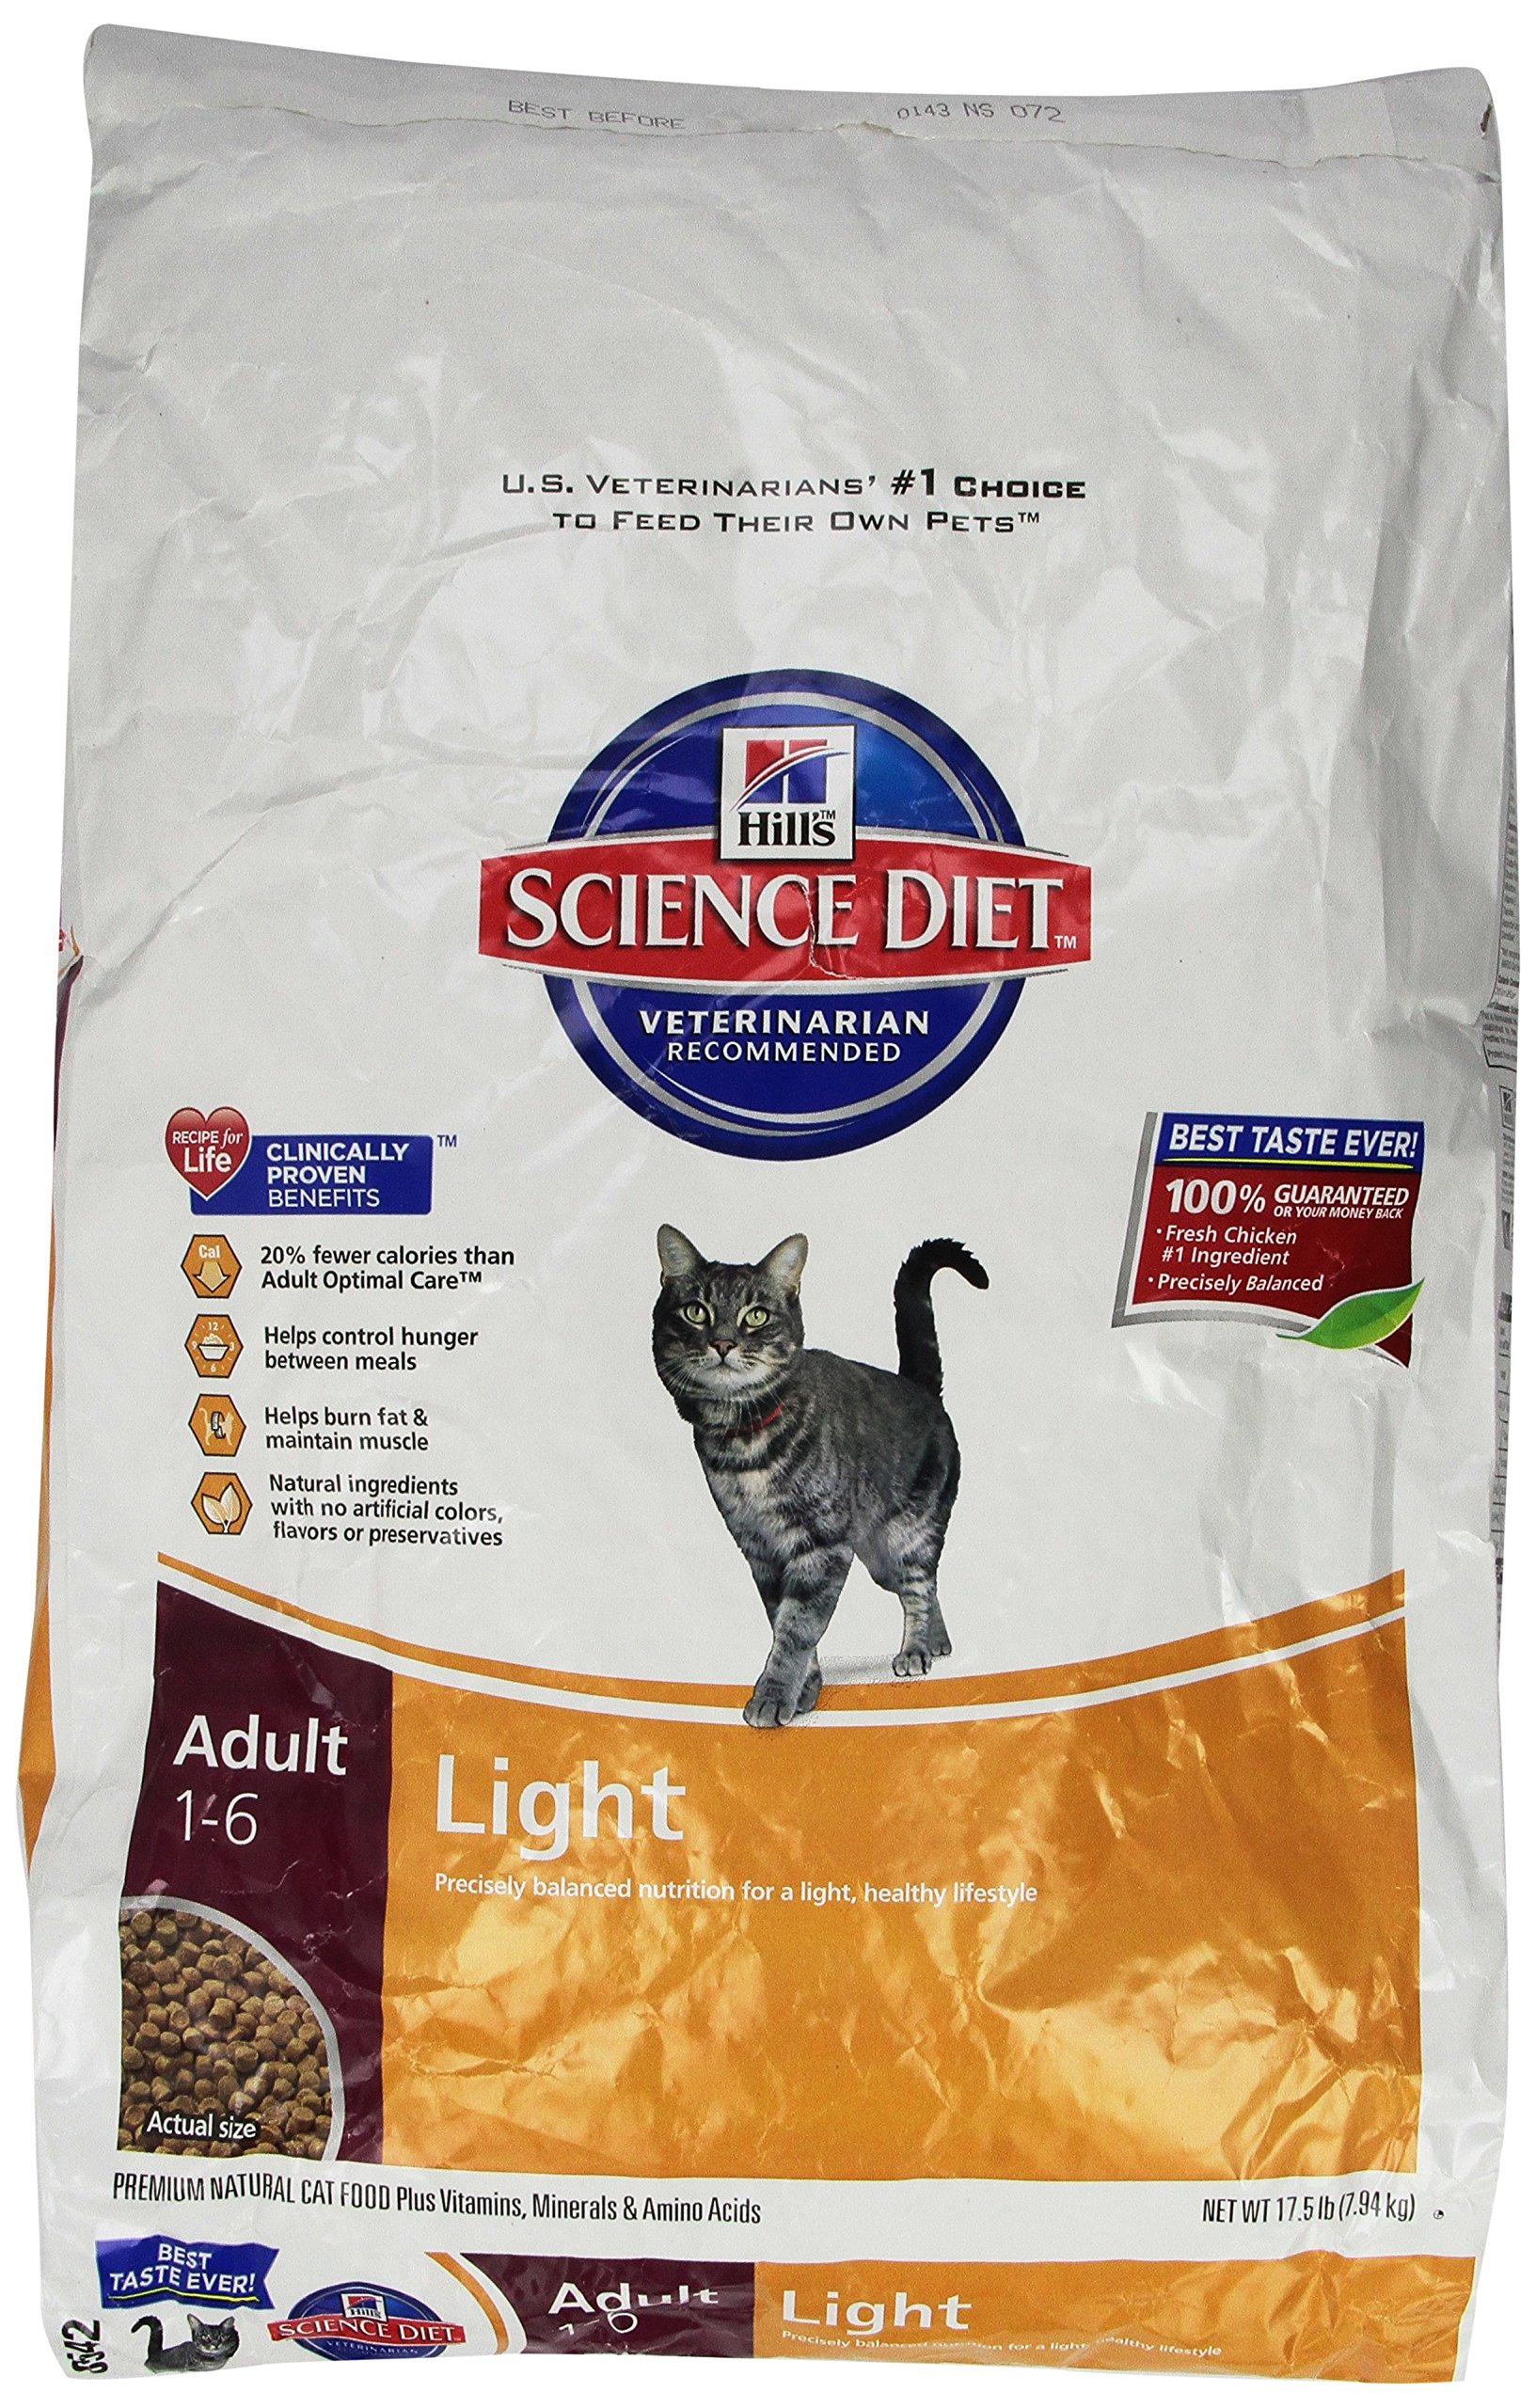 Hill'S Science Diet Adult Light Dry Cat Food, 17.5 Lb Bag by Hill's Science Diet